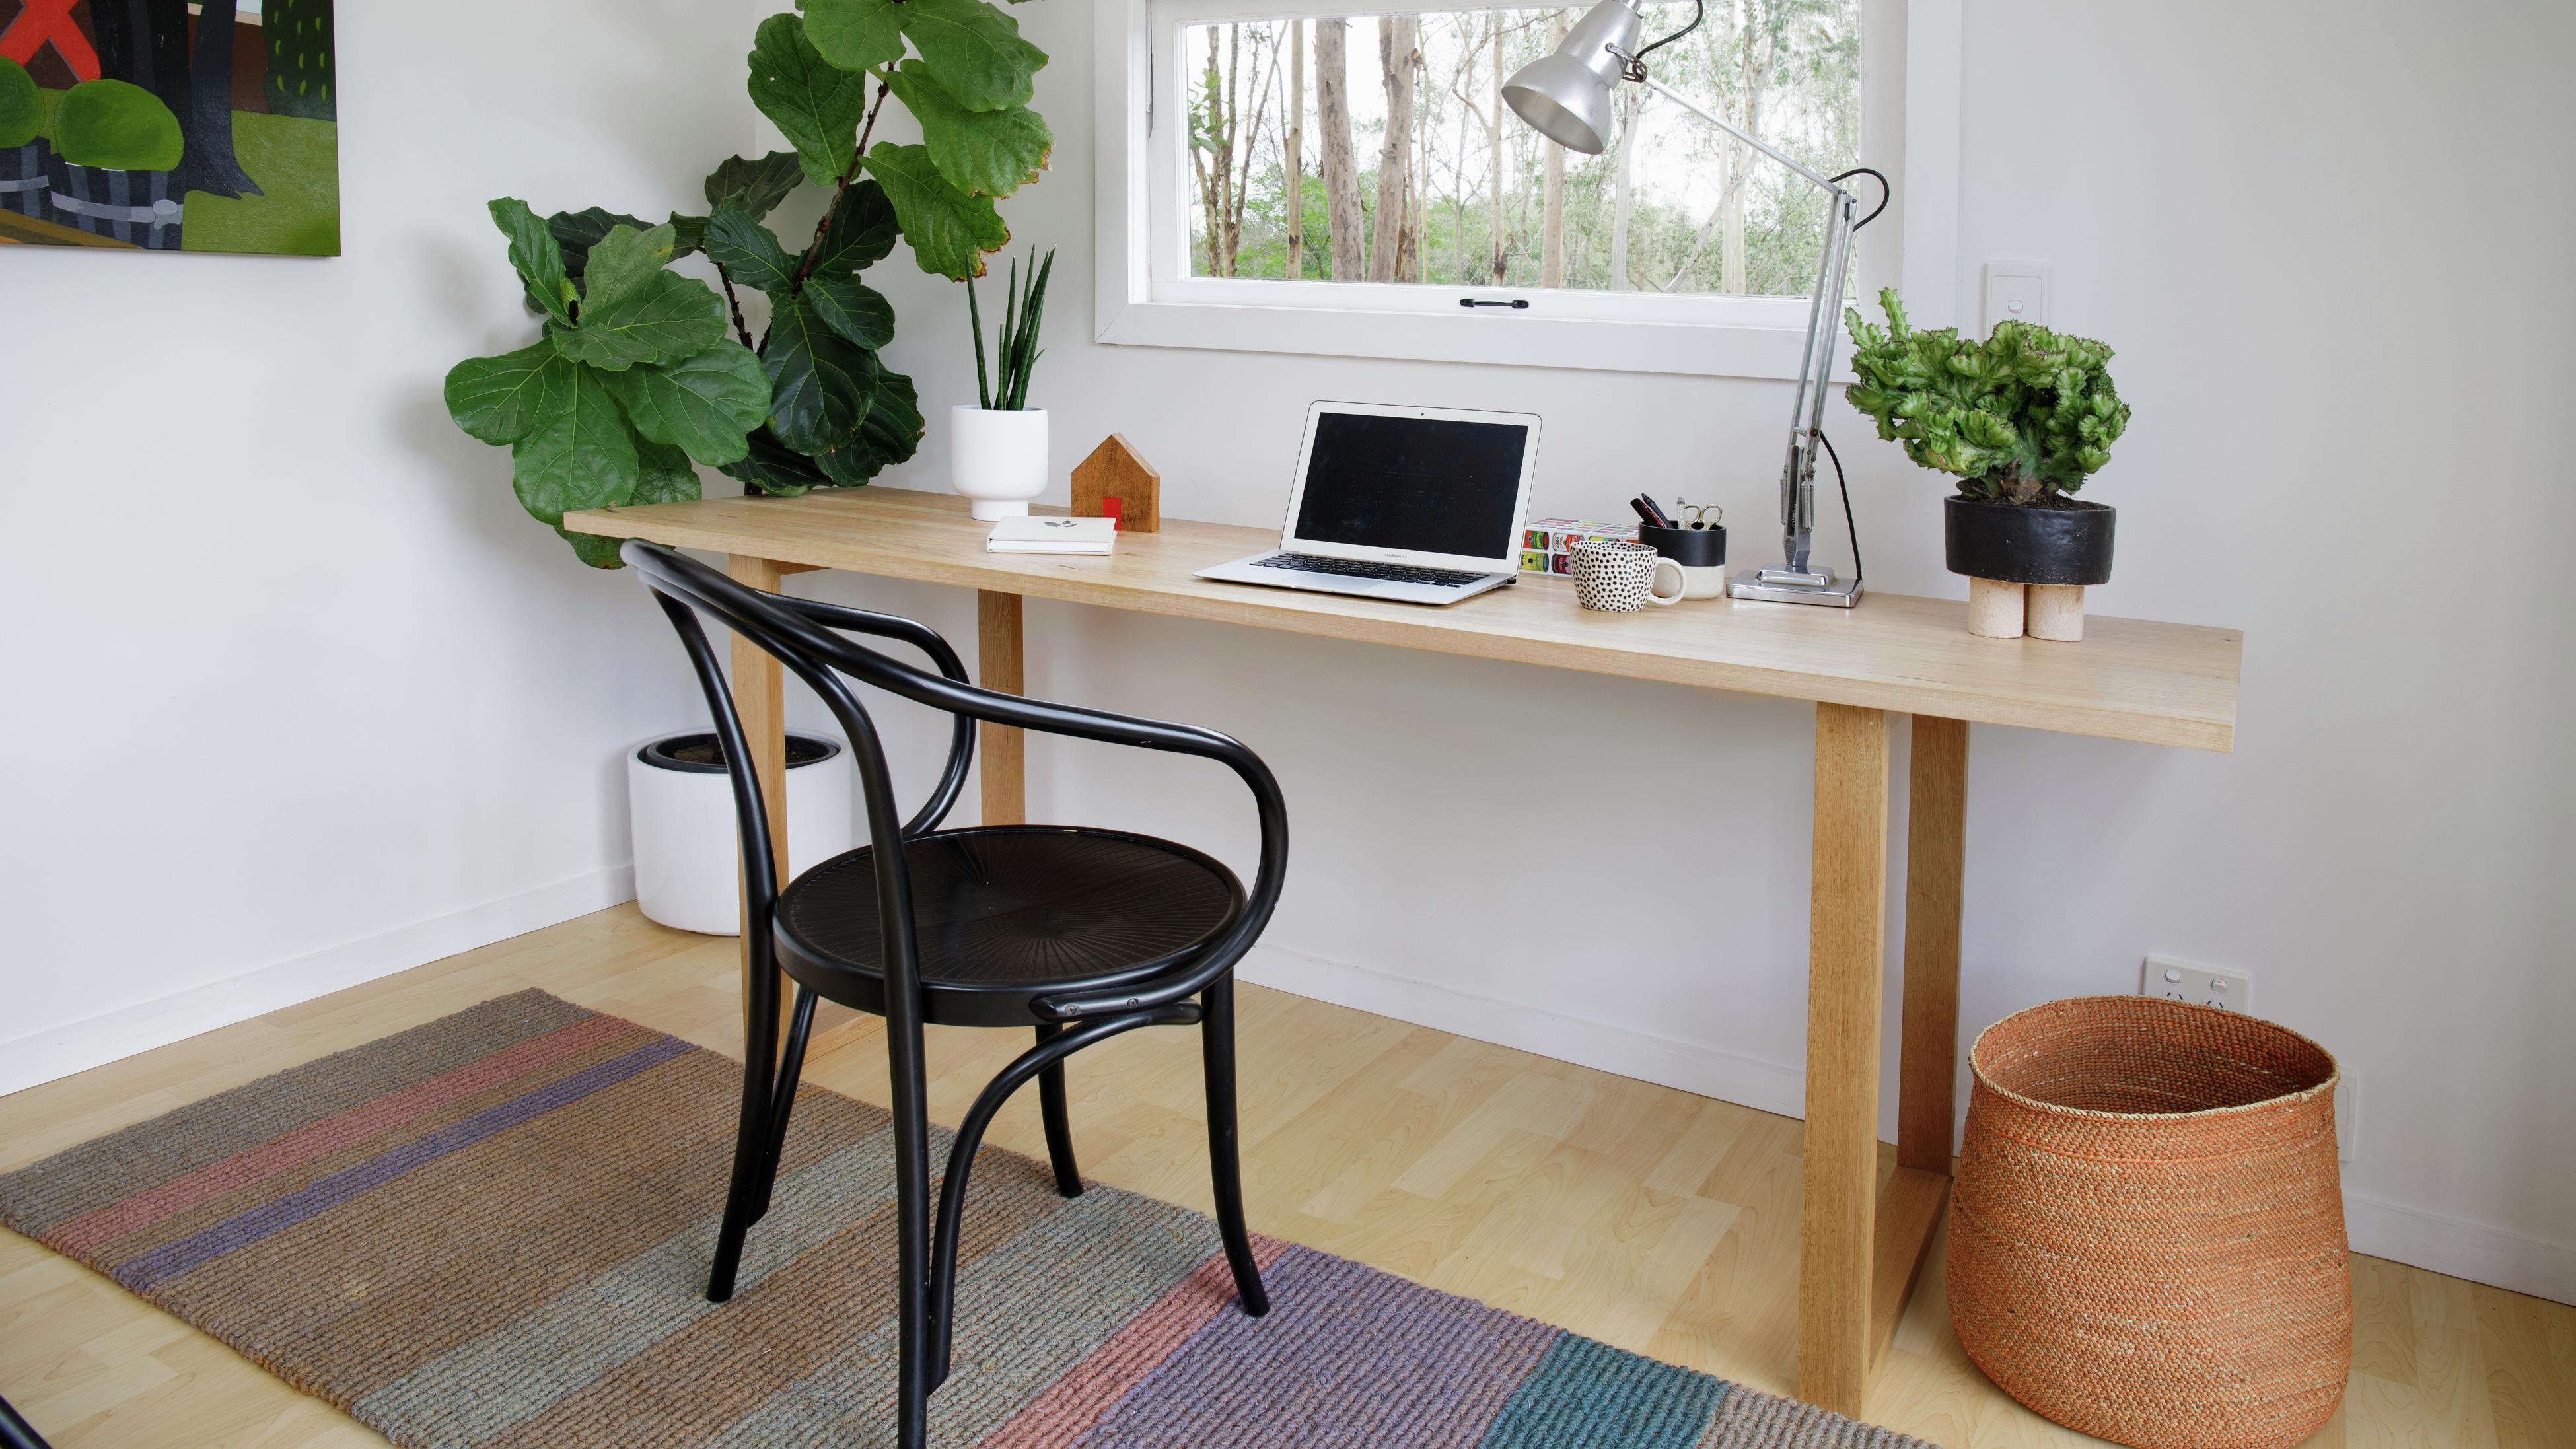 Chair, desk and window in a home office looking onto garden